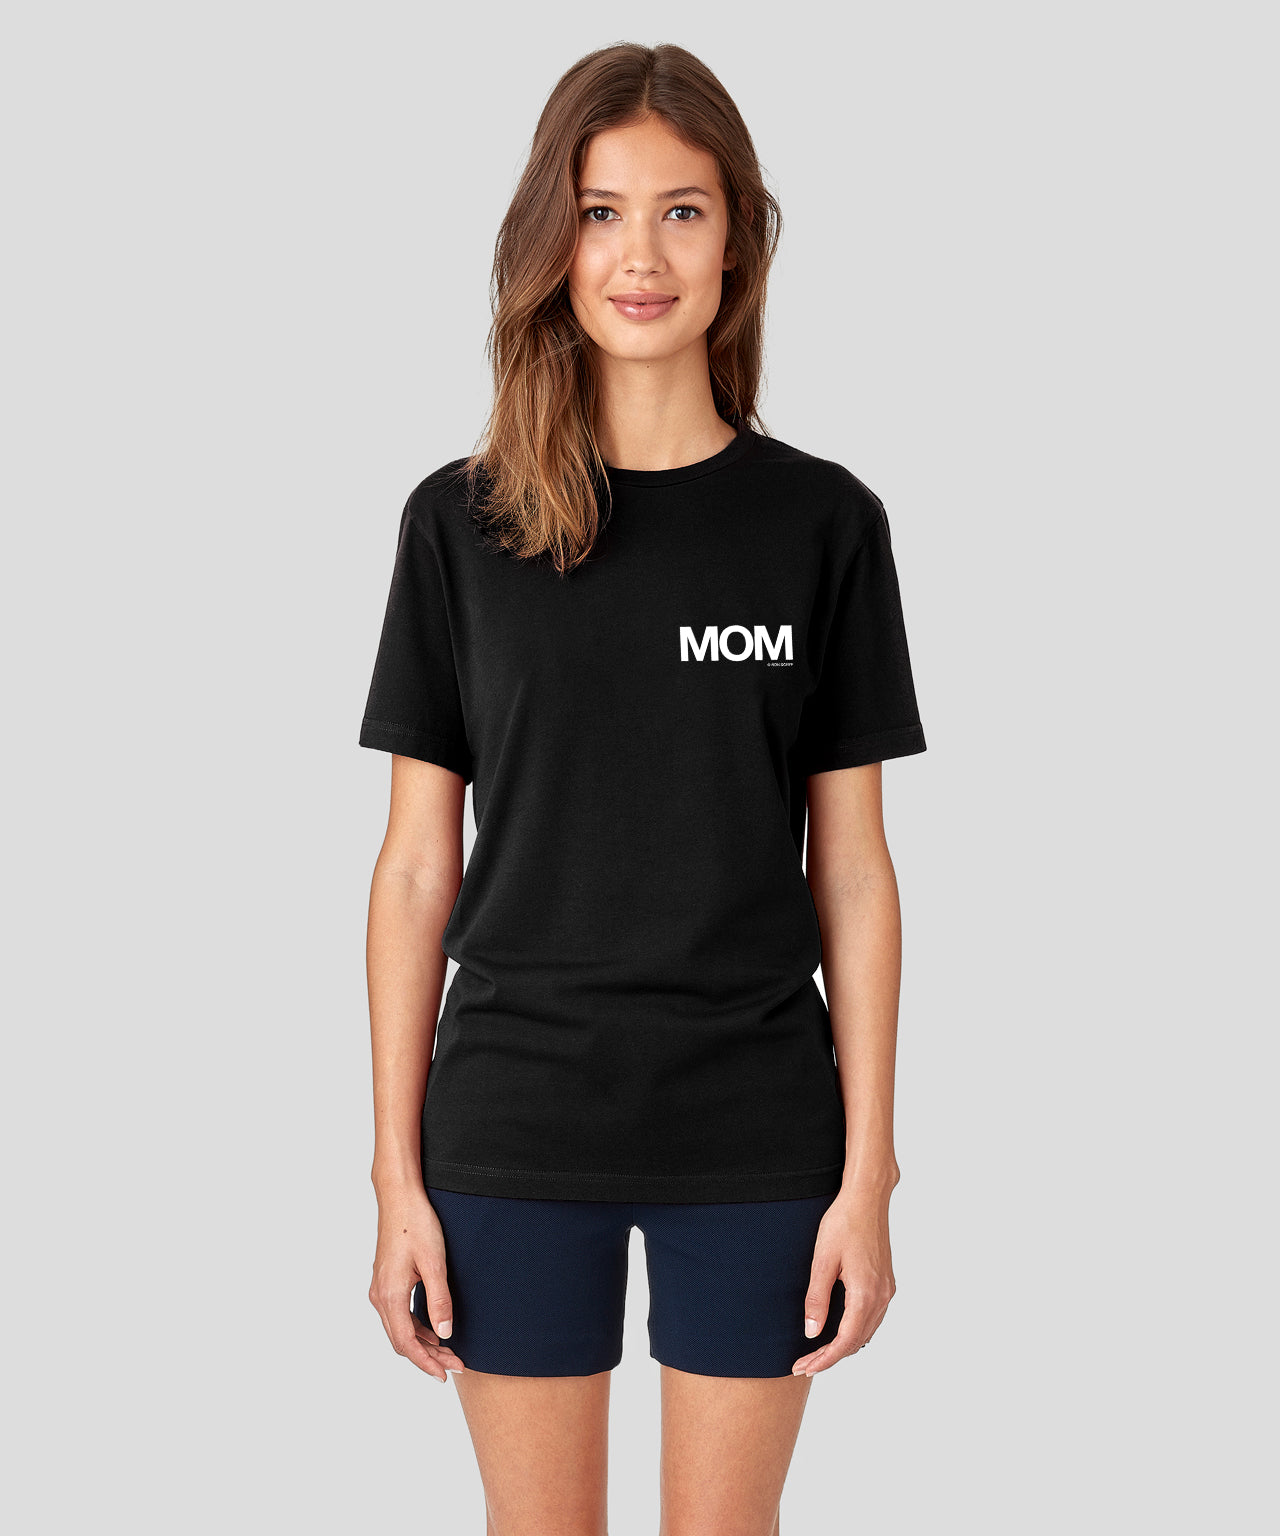 T-Shirt MOM - black